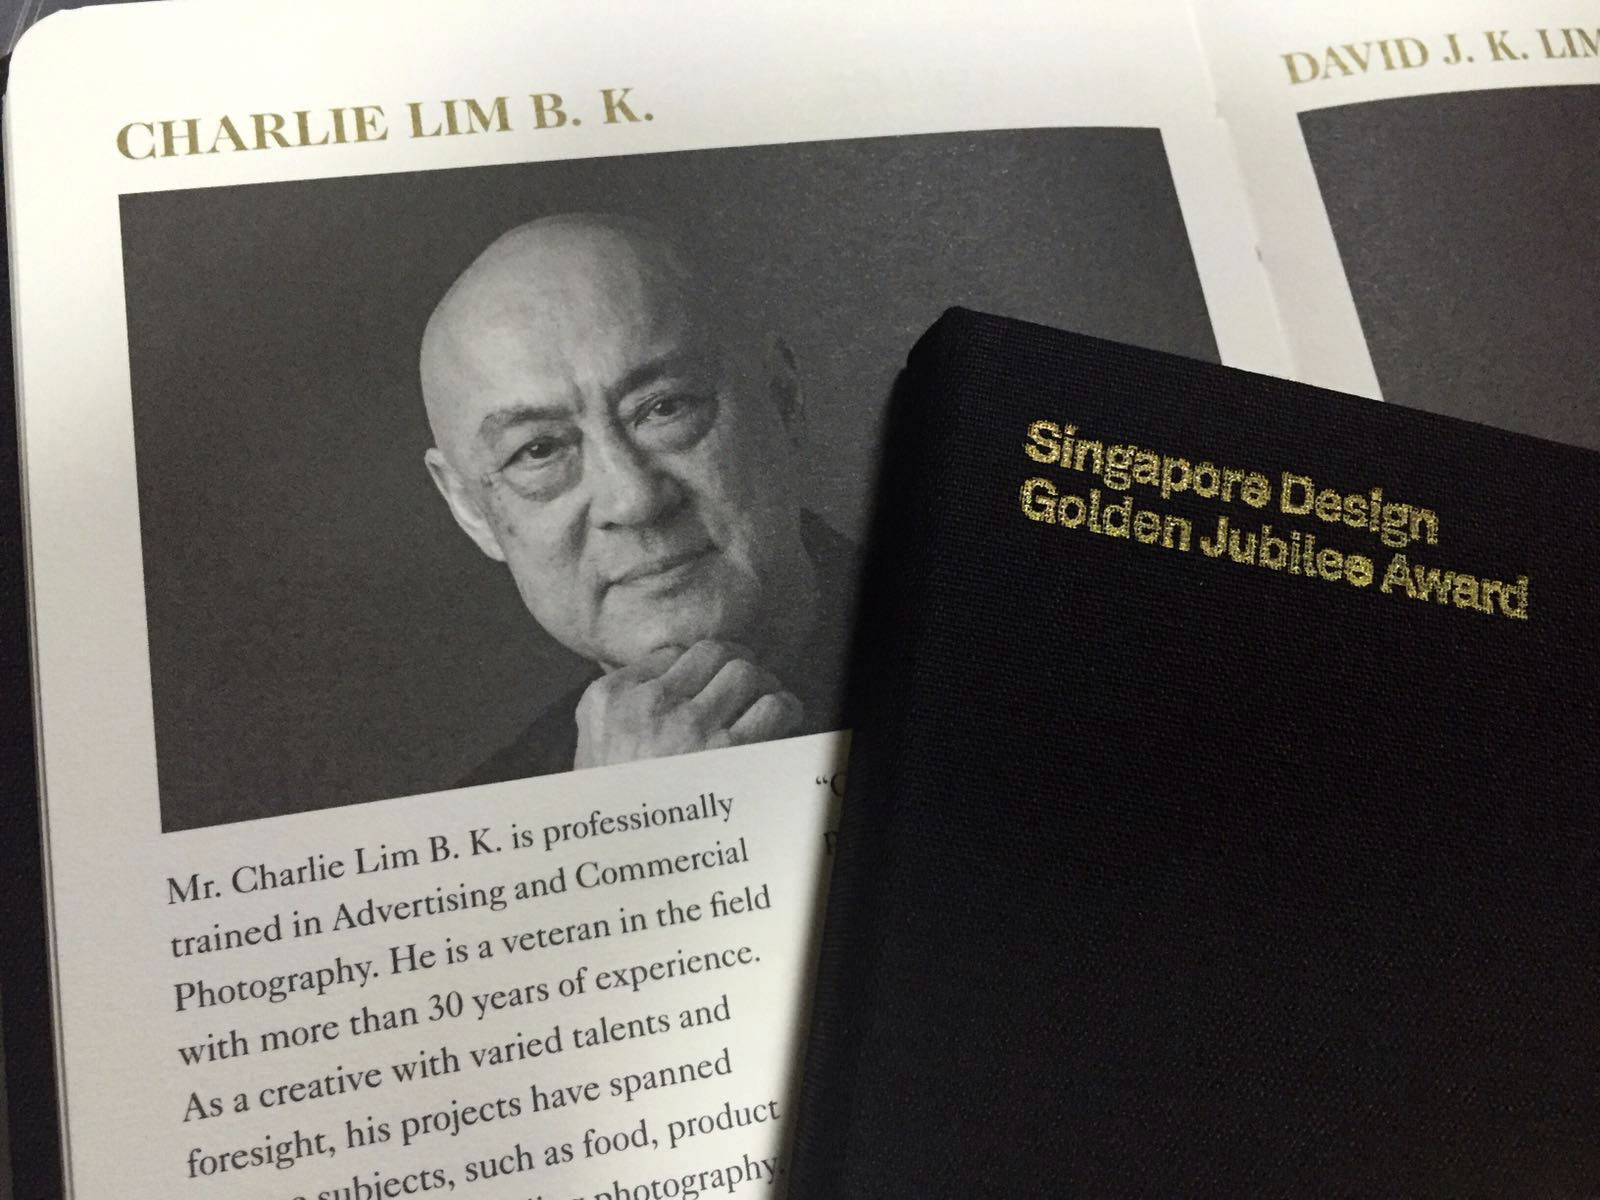 Singapore Design Golden Jubilee Award